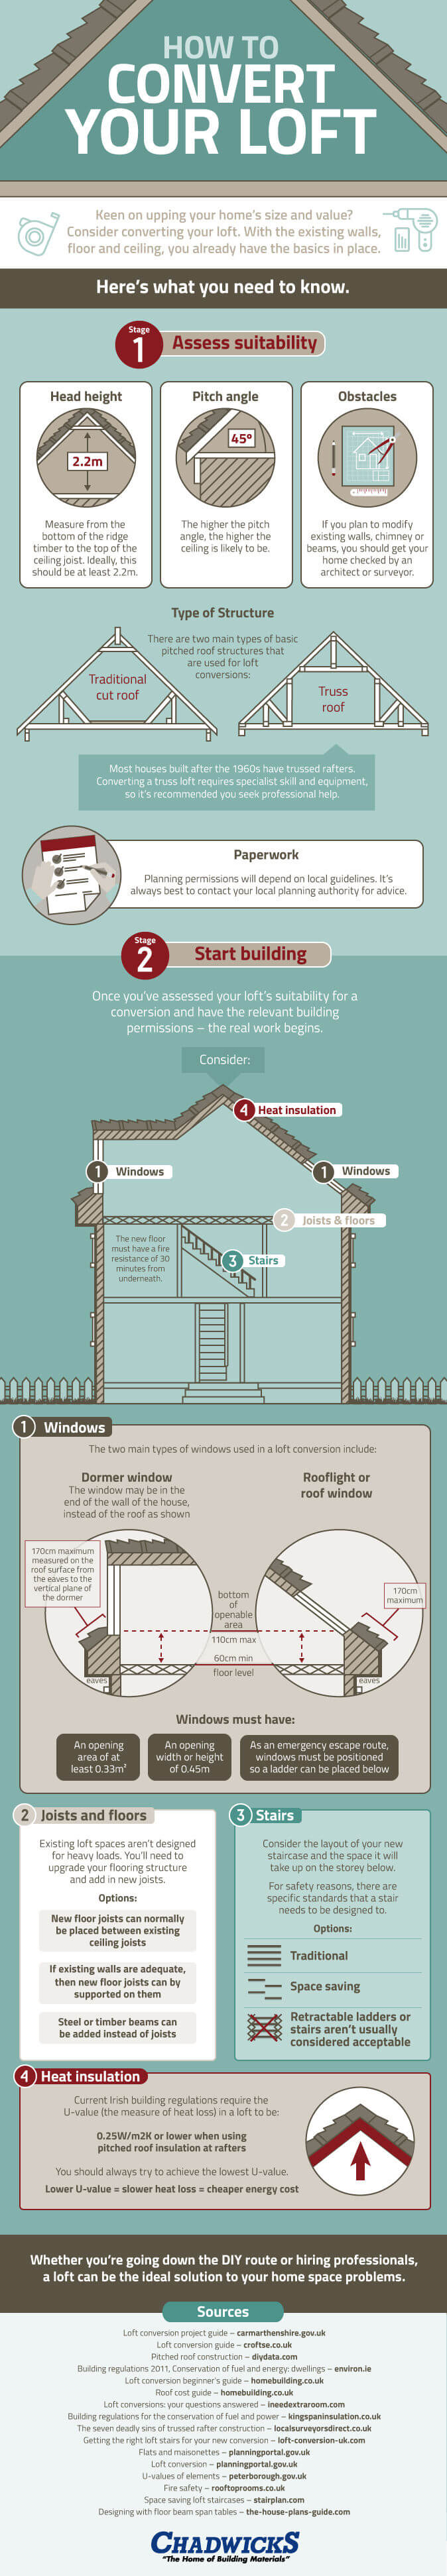 Converting Your Loft infographic